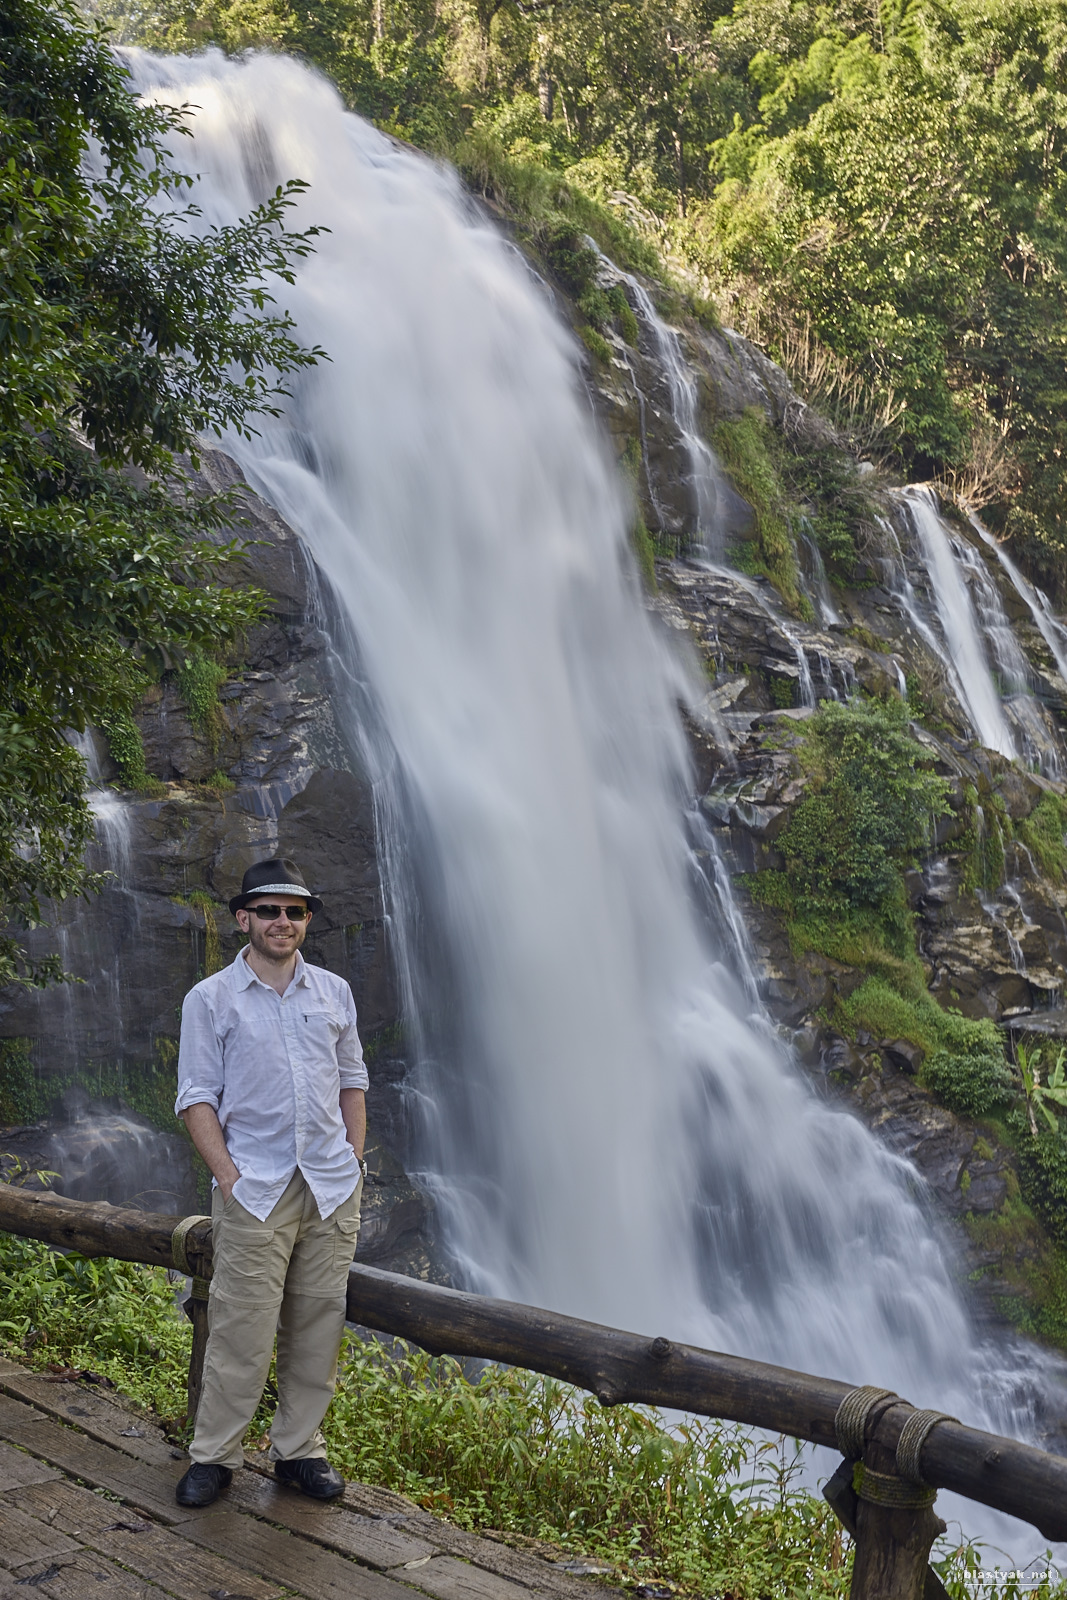 Me at one of the waterfalls